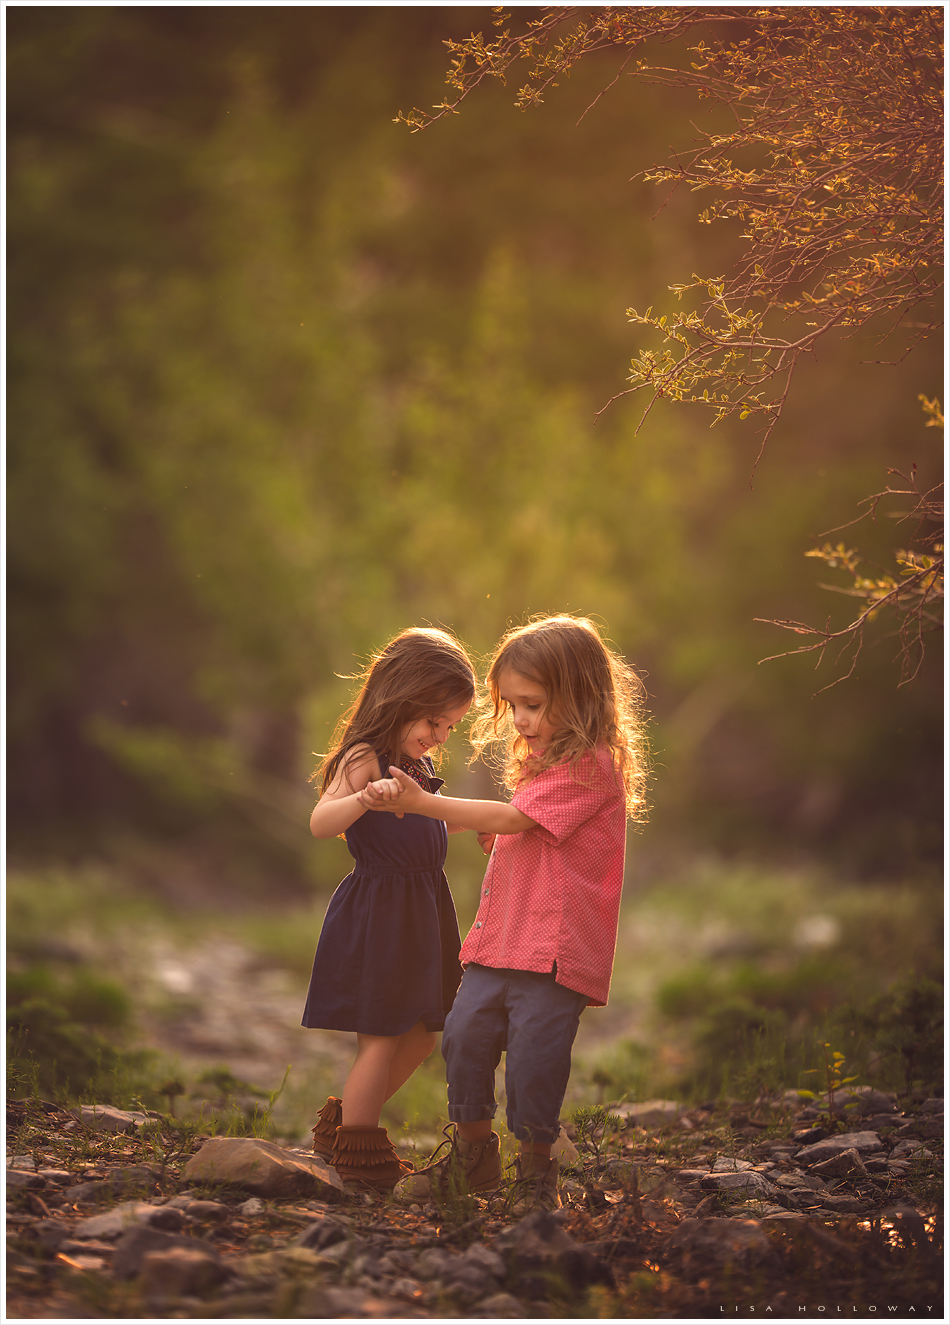 cute preschooler boy and girl dance together during a photo session outdoors in the forest near las vegas nevada